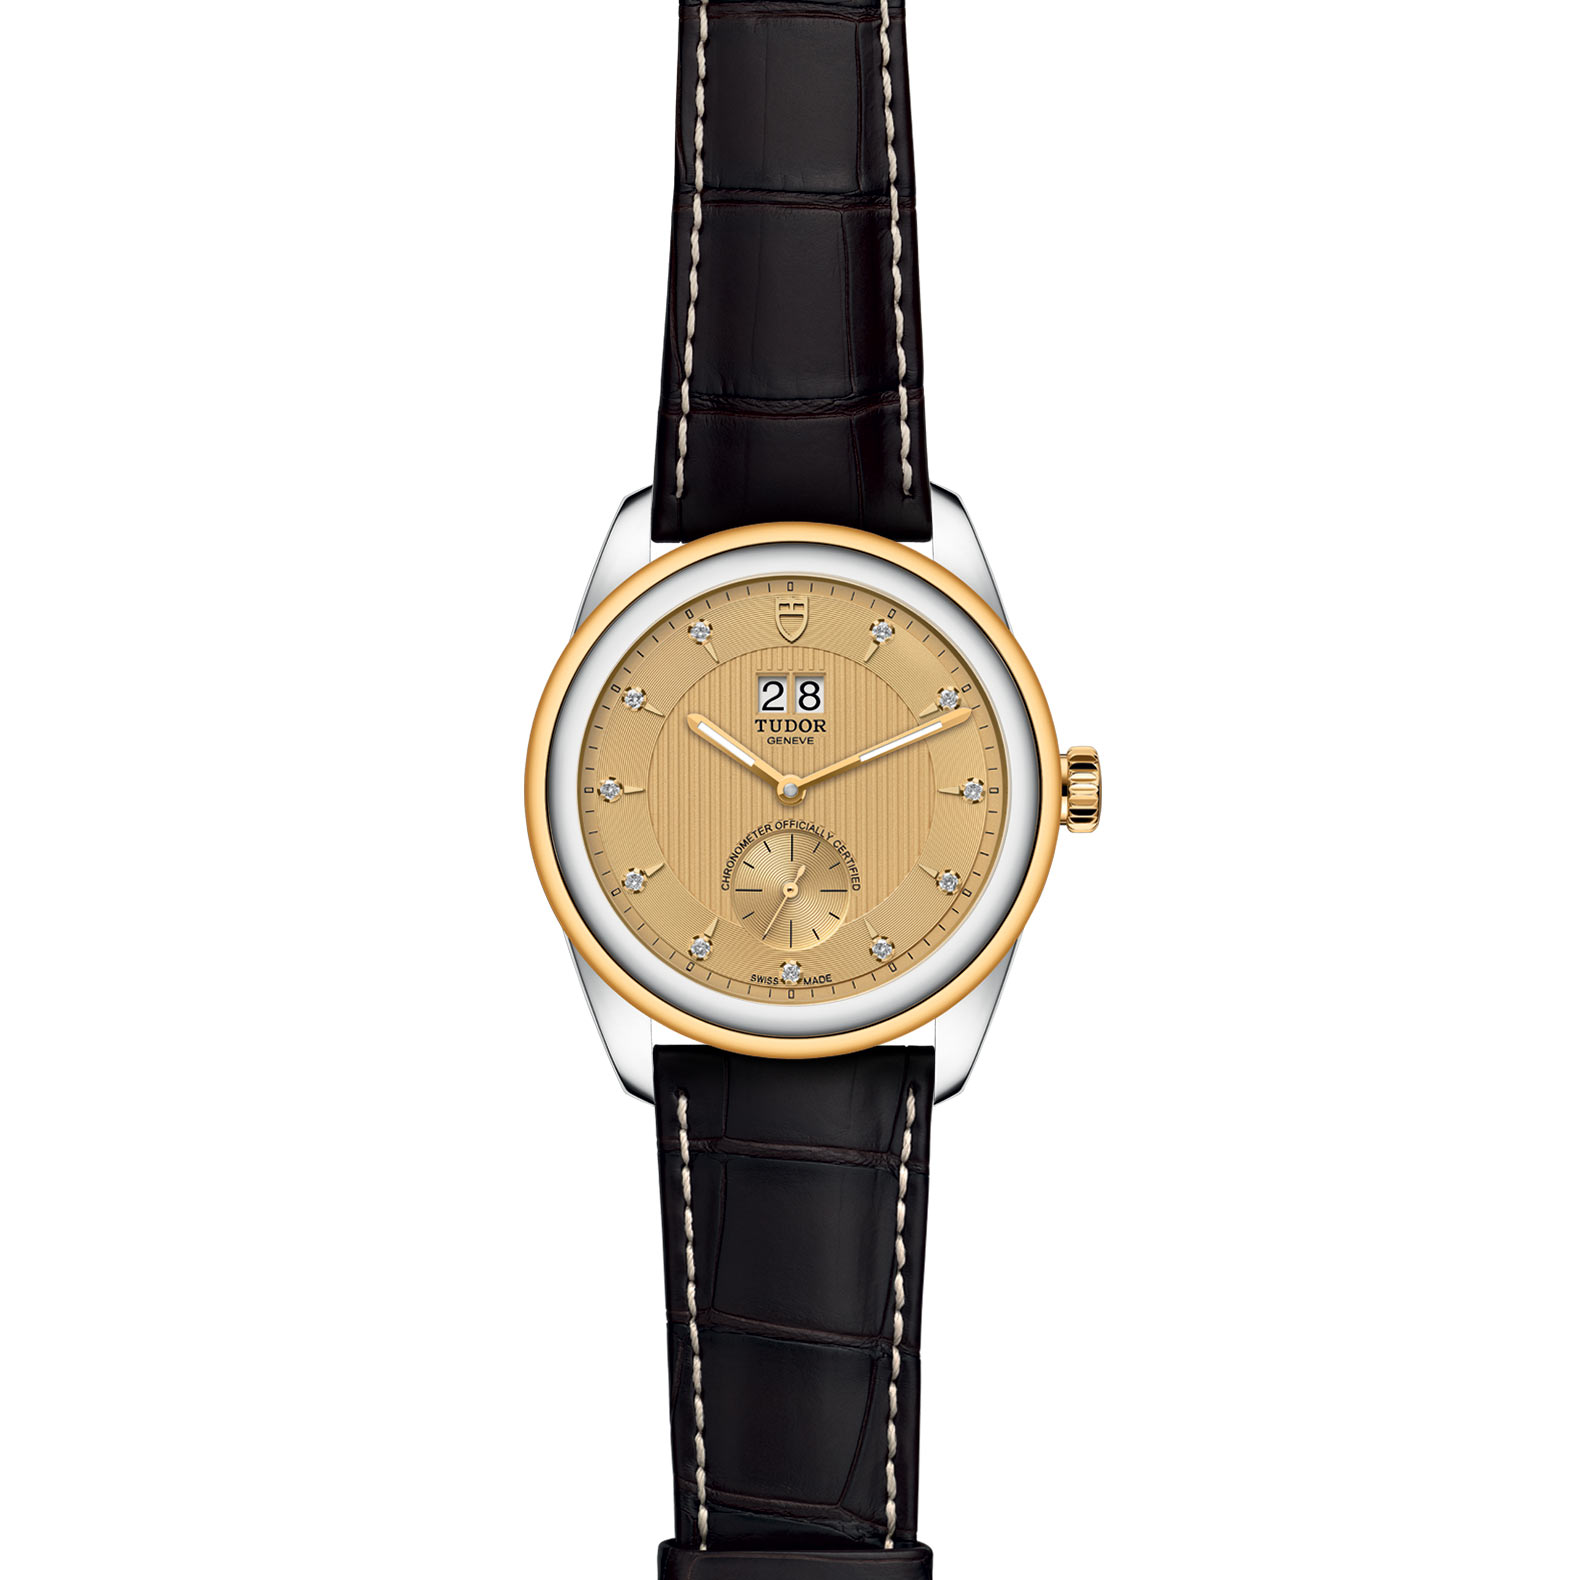 TUDOR Glamour Double Date M57103 0024 Frontfacing